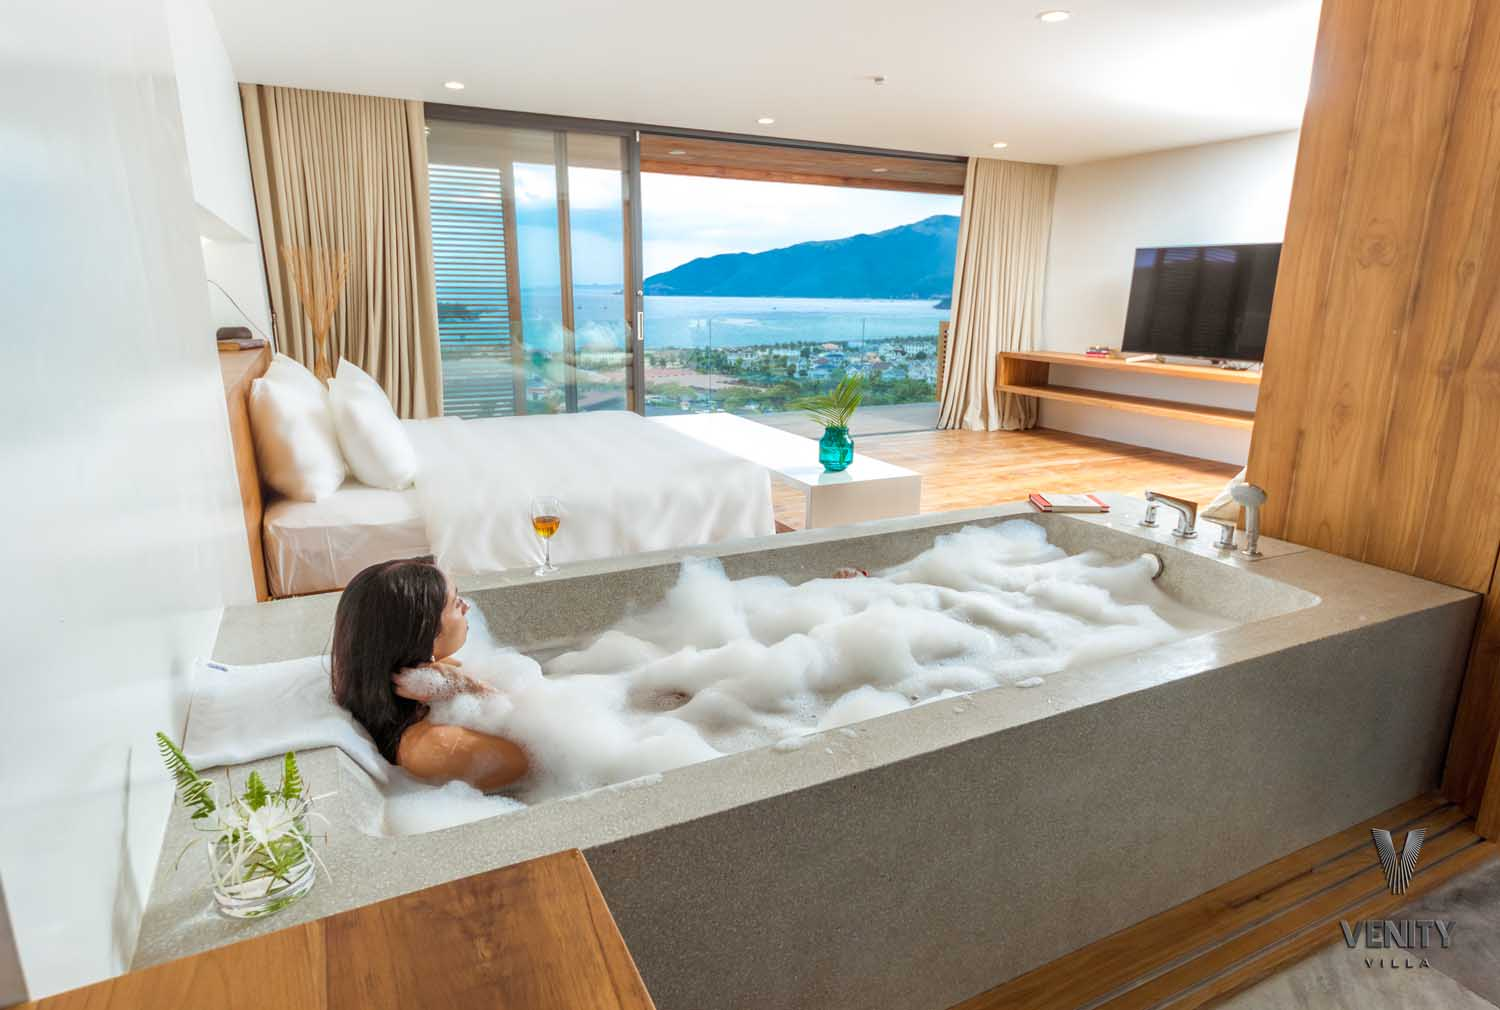 View from the bath at Venity Villa Nha Trang - photography by Halo Digital Media - Photographer in Vietnam